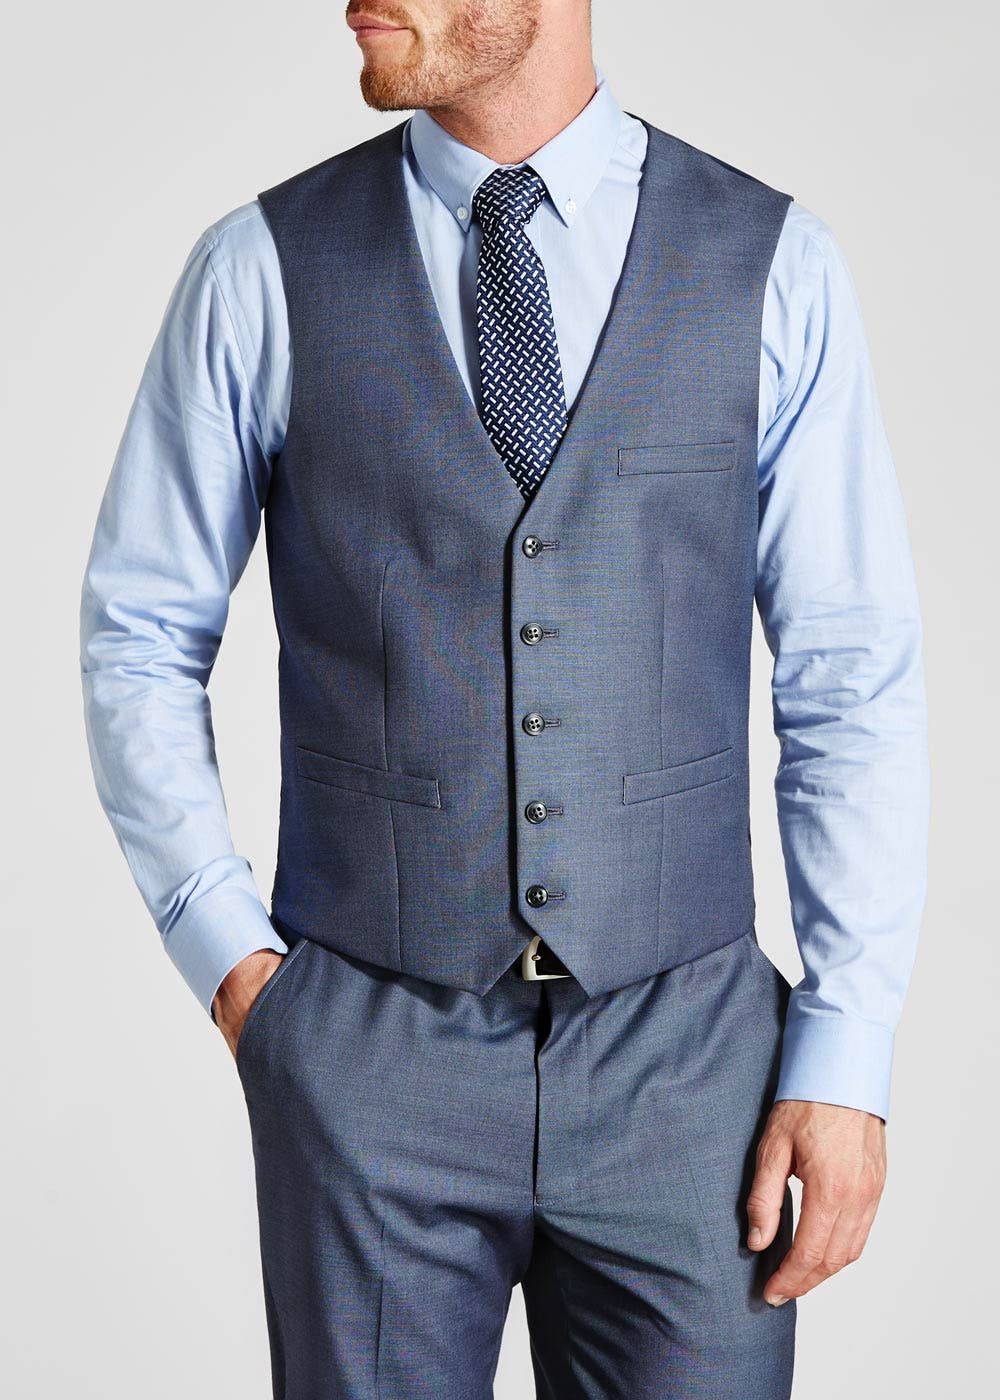 Find matalan suit from a vast selection of Suits for Men. Get great deals on eBay!